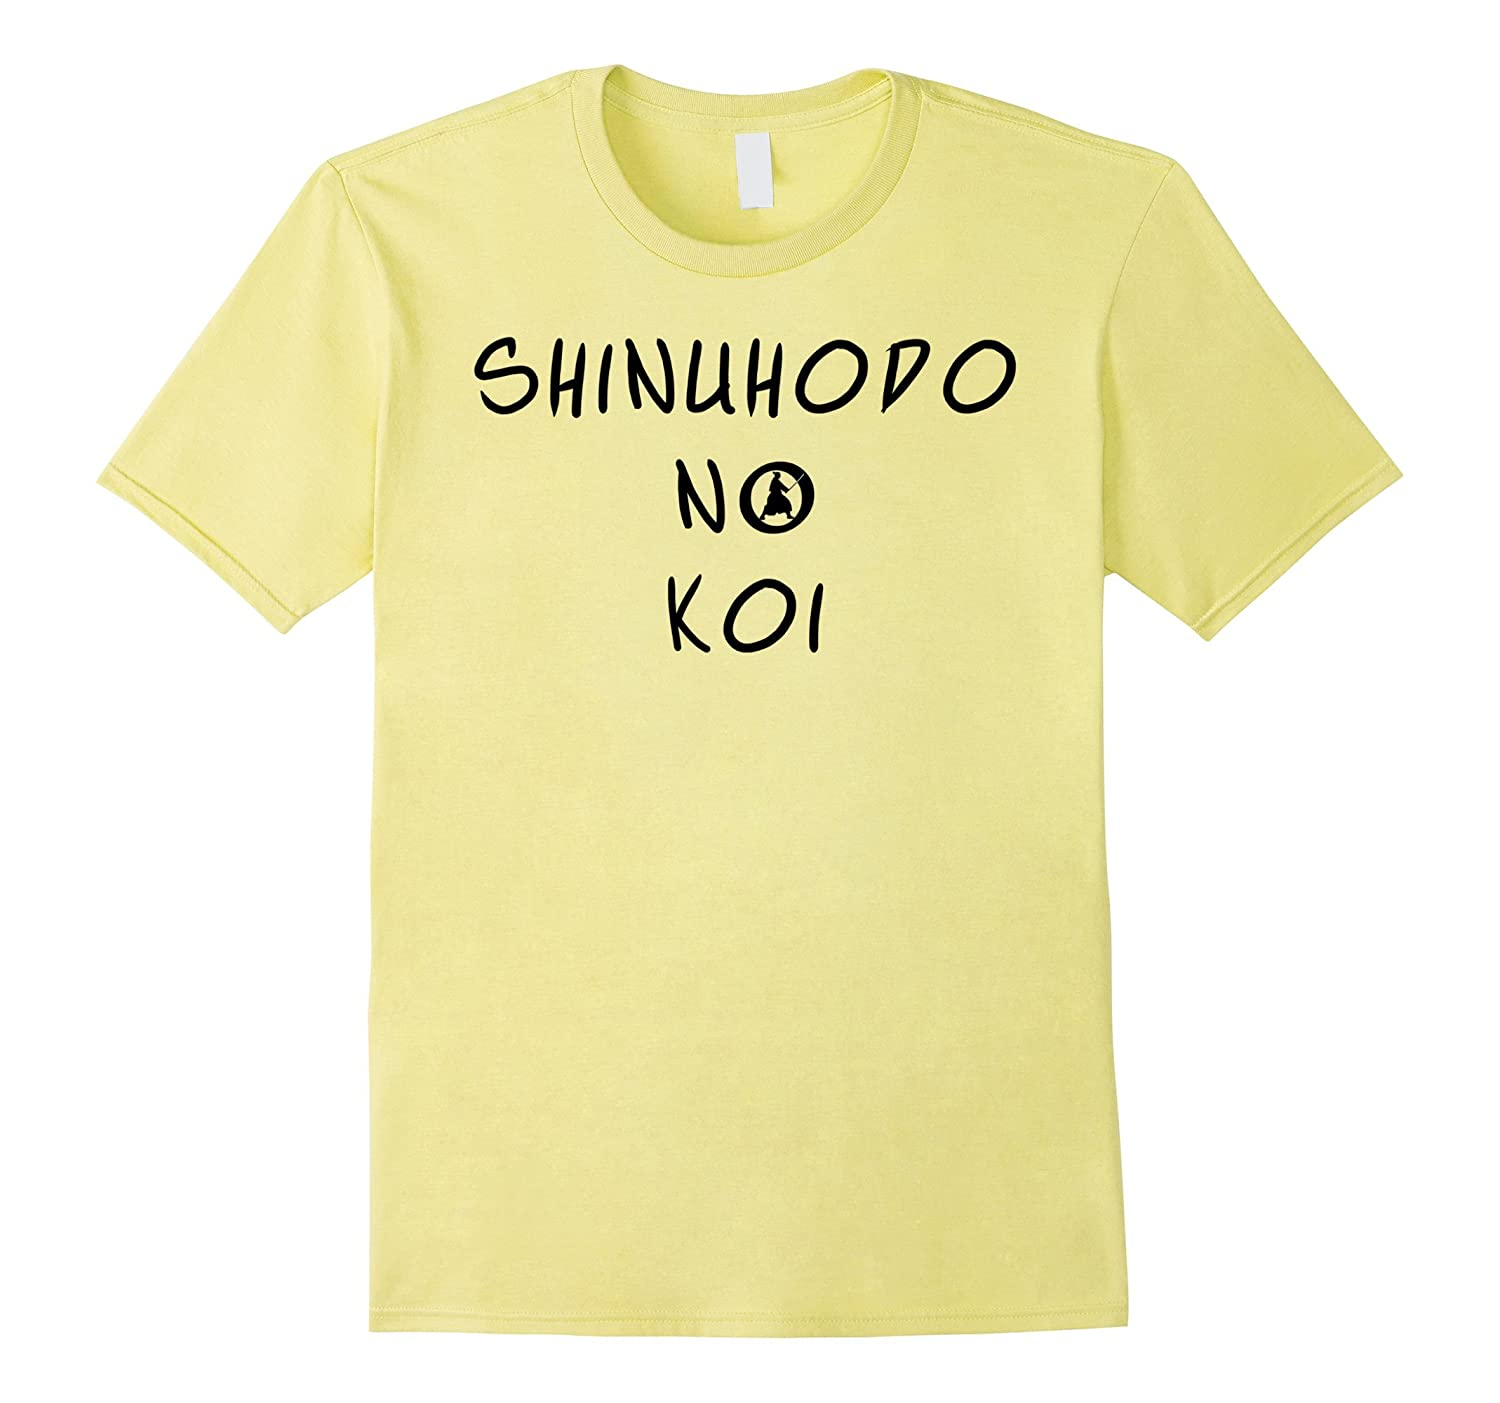 Shinuhodo No Koi T-Shirt Love Worth Dying For Shirt-TJ